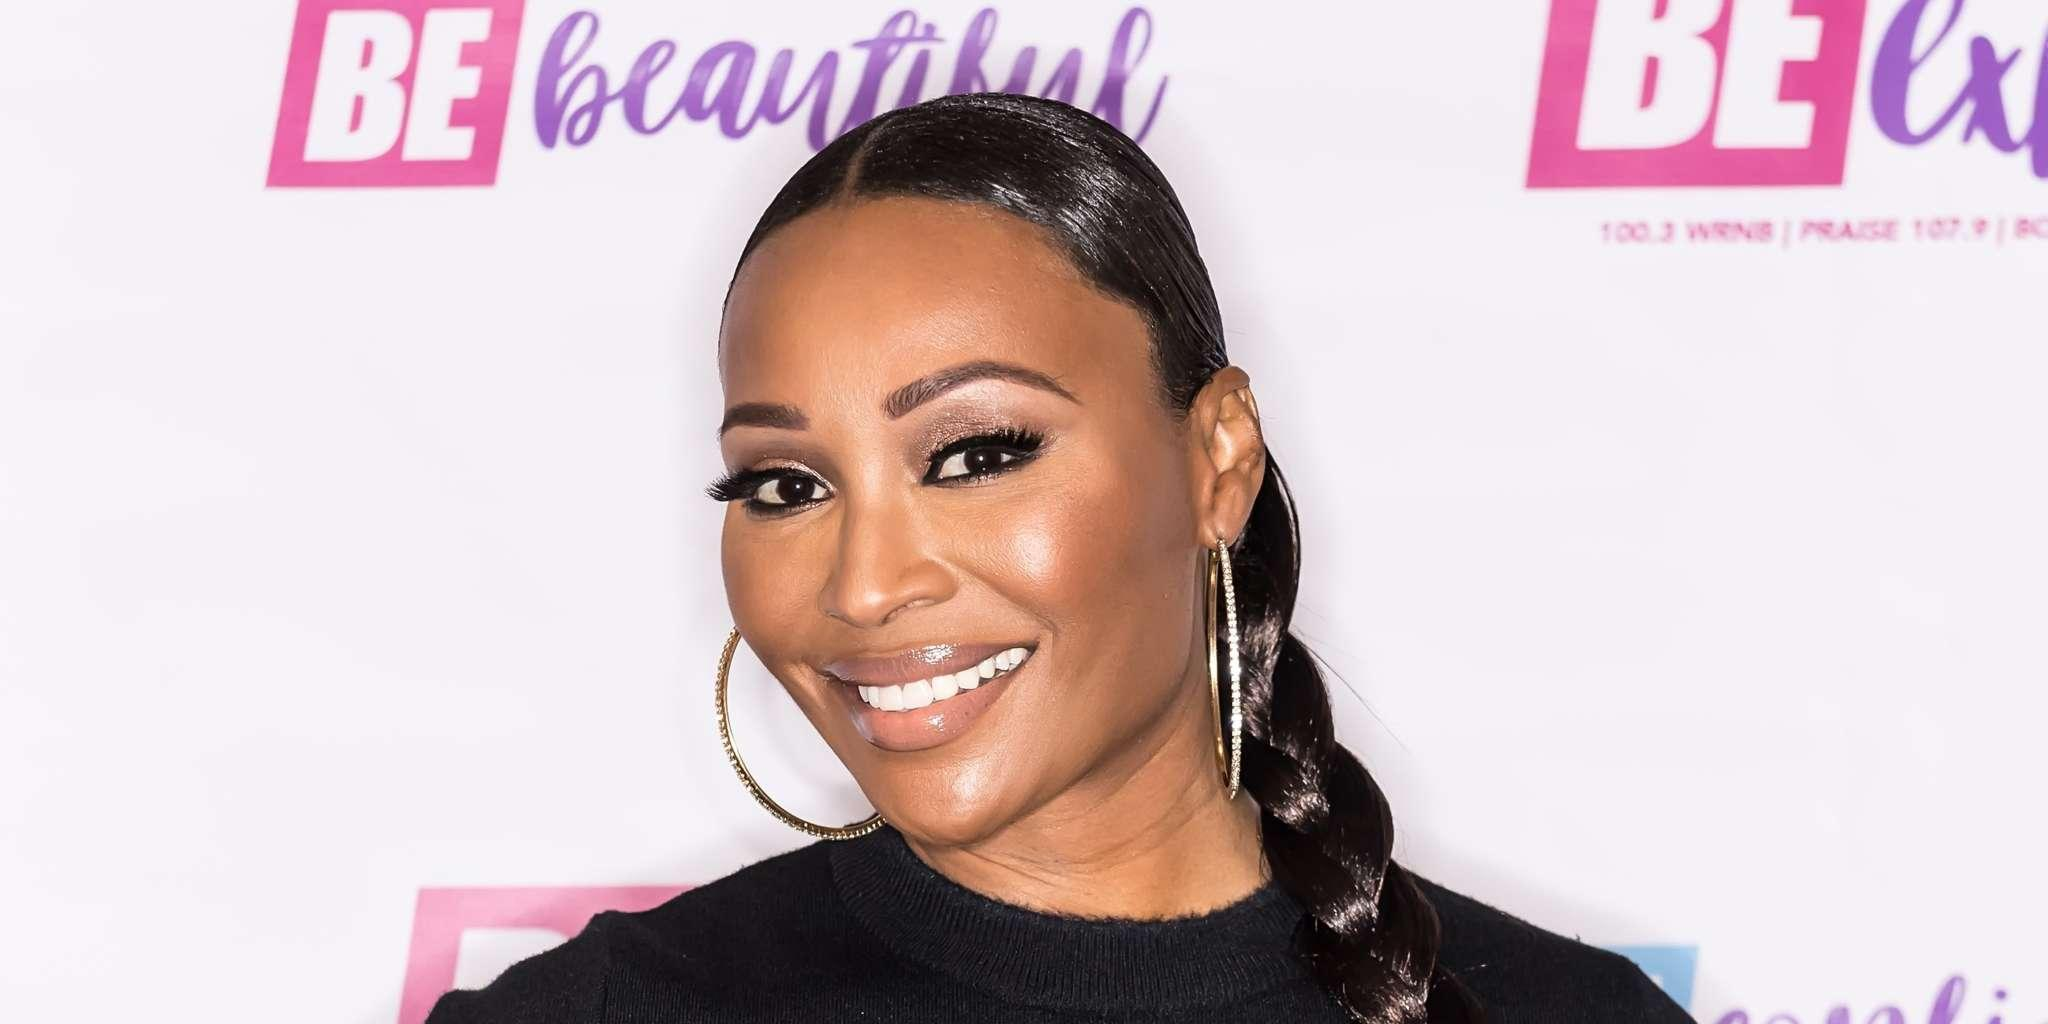 Cynthia Bailey Offers Fans An Early Morning Motivation - Check Out The Video